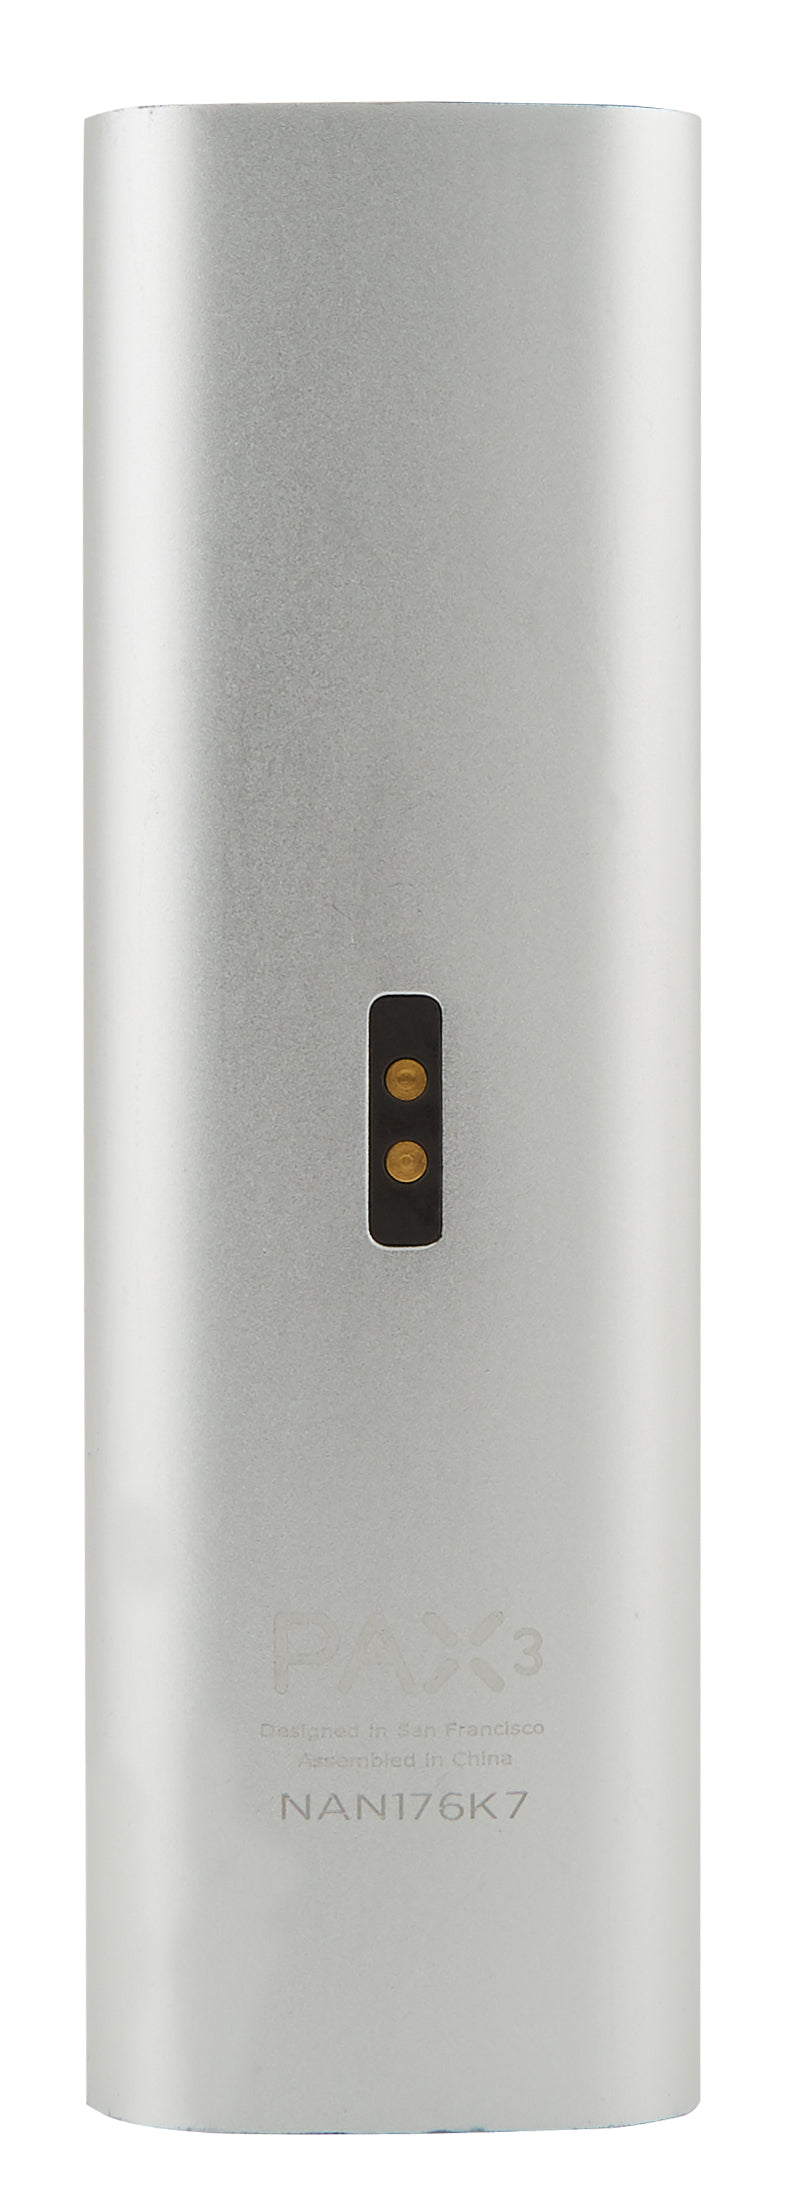 Pax 3 Basic Kit - Vape - budders-cannabis - PAX